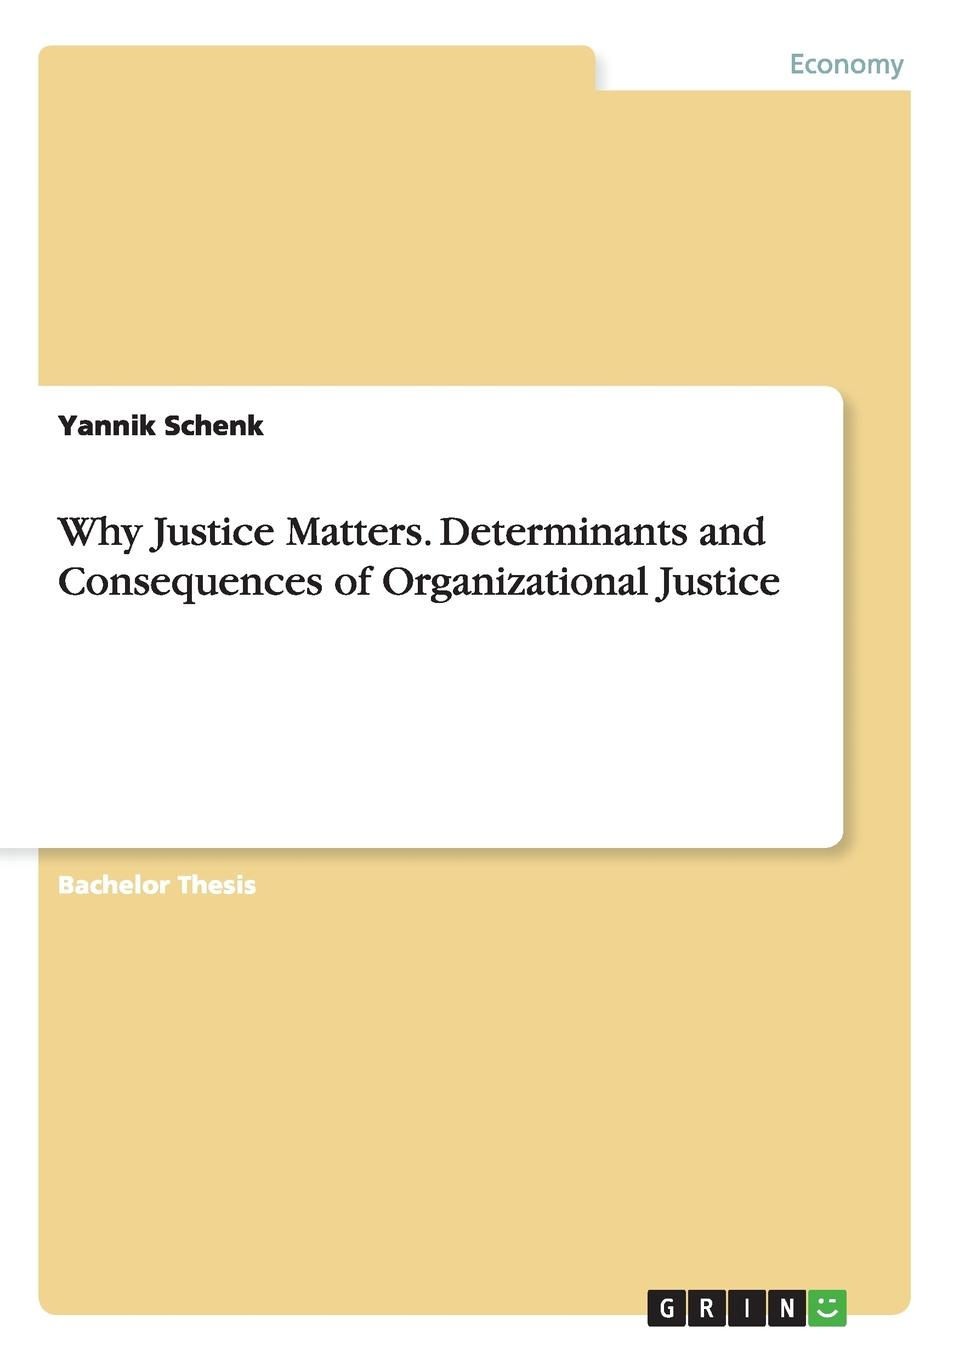 Yannik Schenk Why Justice Matters. Determinants and Consequences of Organizational Justice